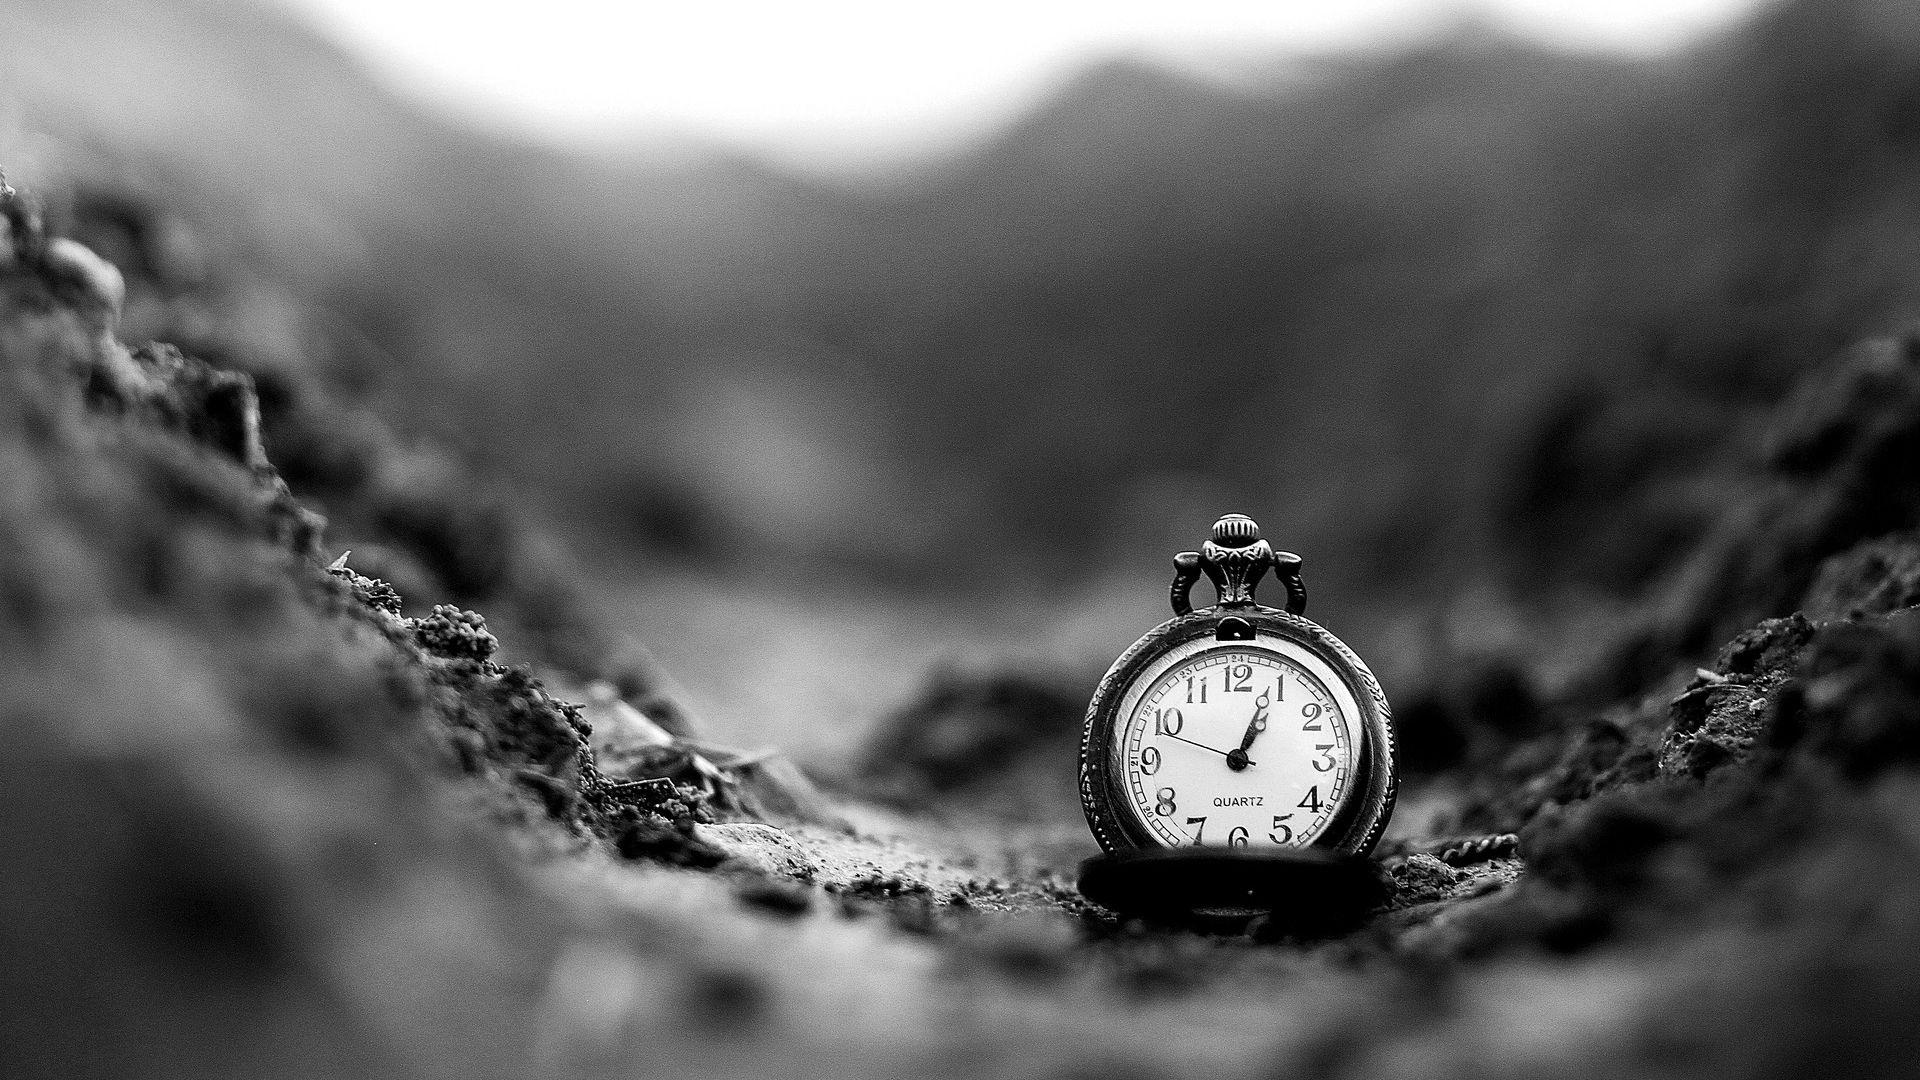 vintage-clock-photography-hd-wallpaper-1920x1080-8669 | photography